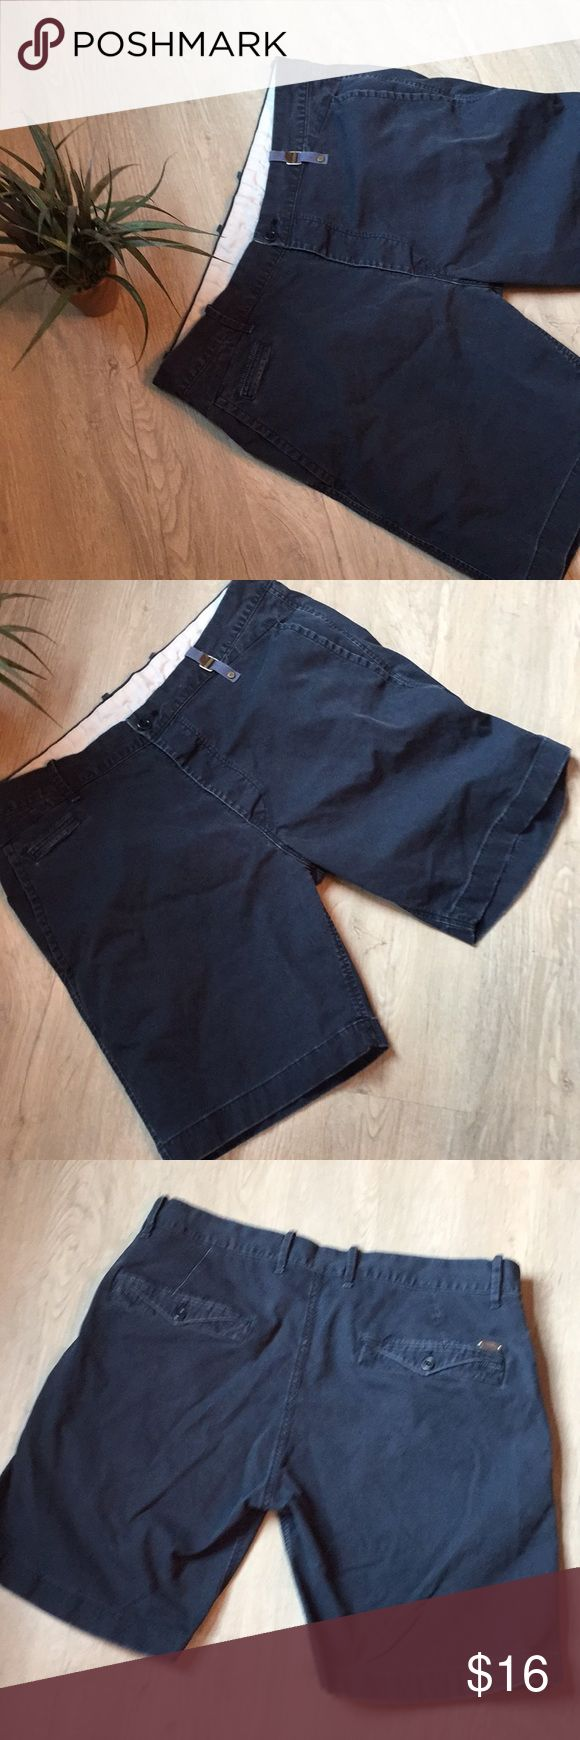 Men's shorts size 36 Good shape navy inseam 9 Diesel Shorts Flat Front